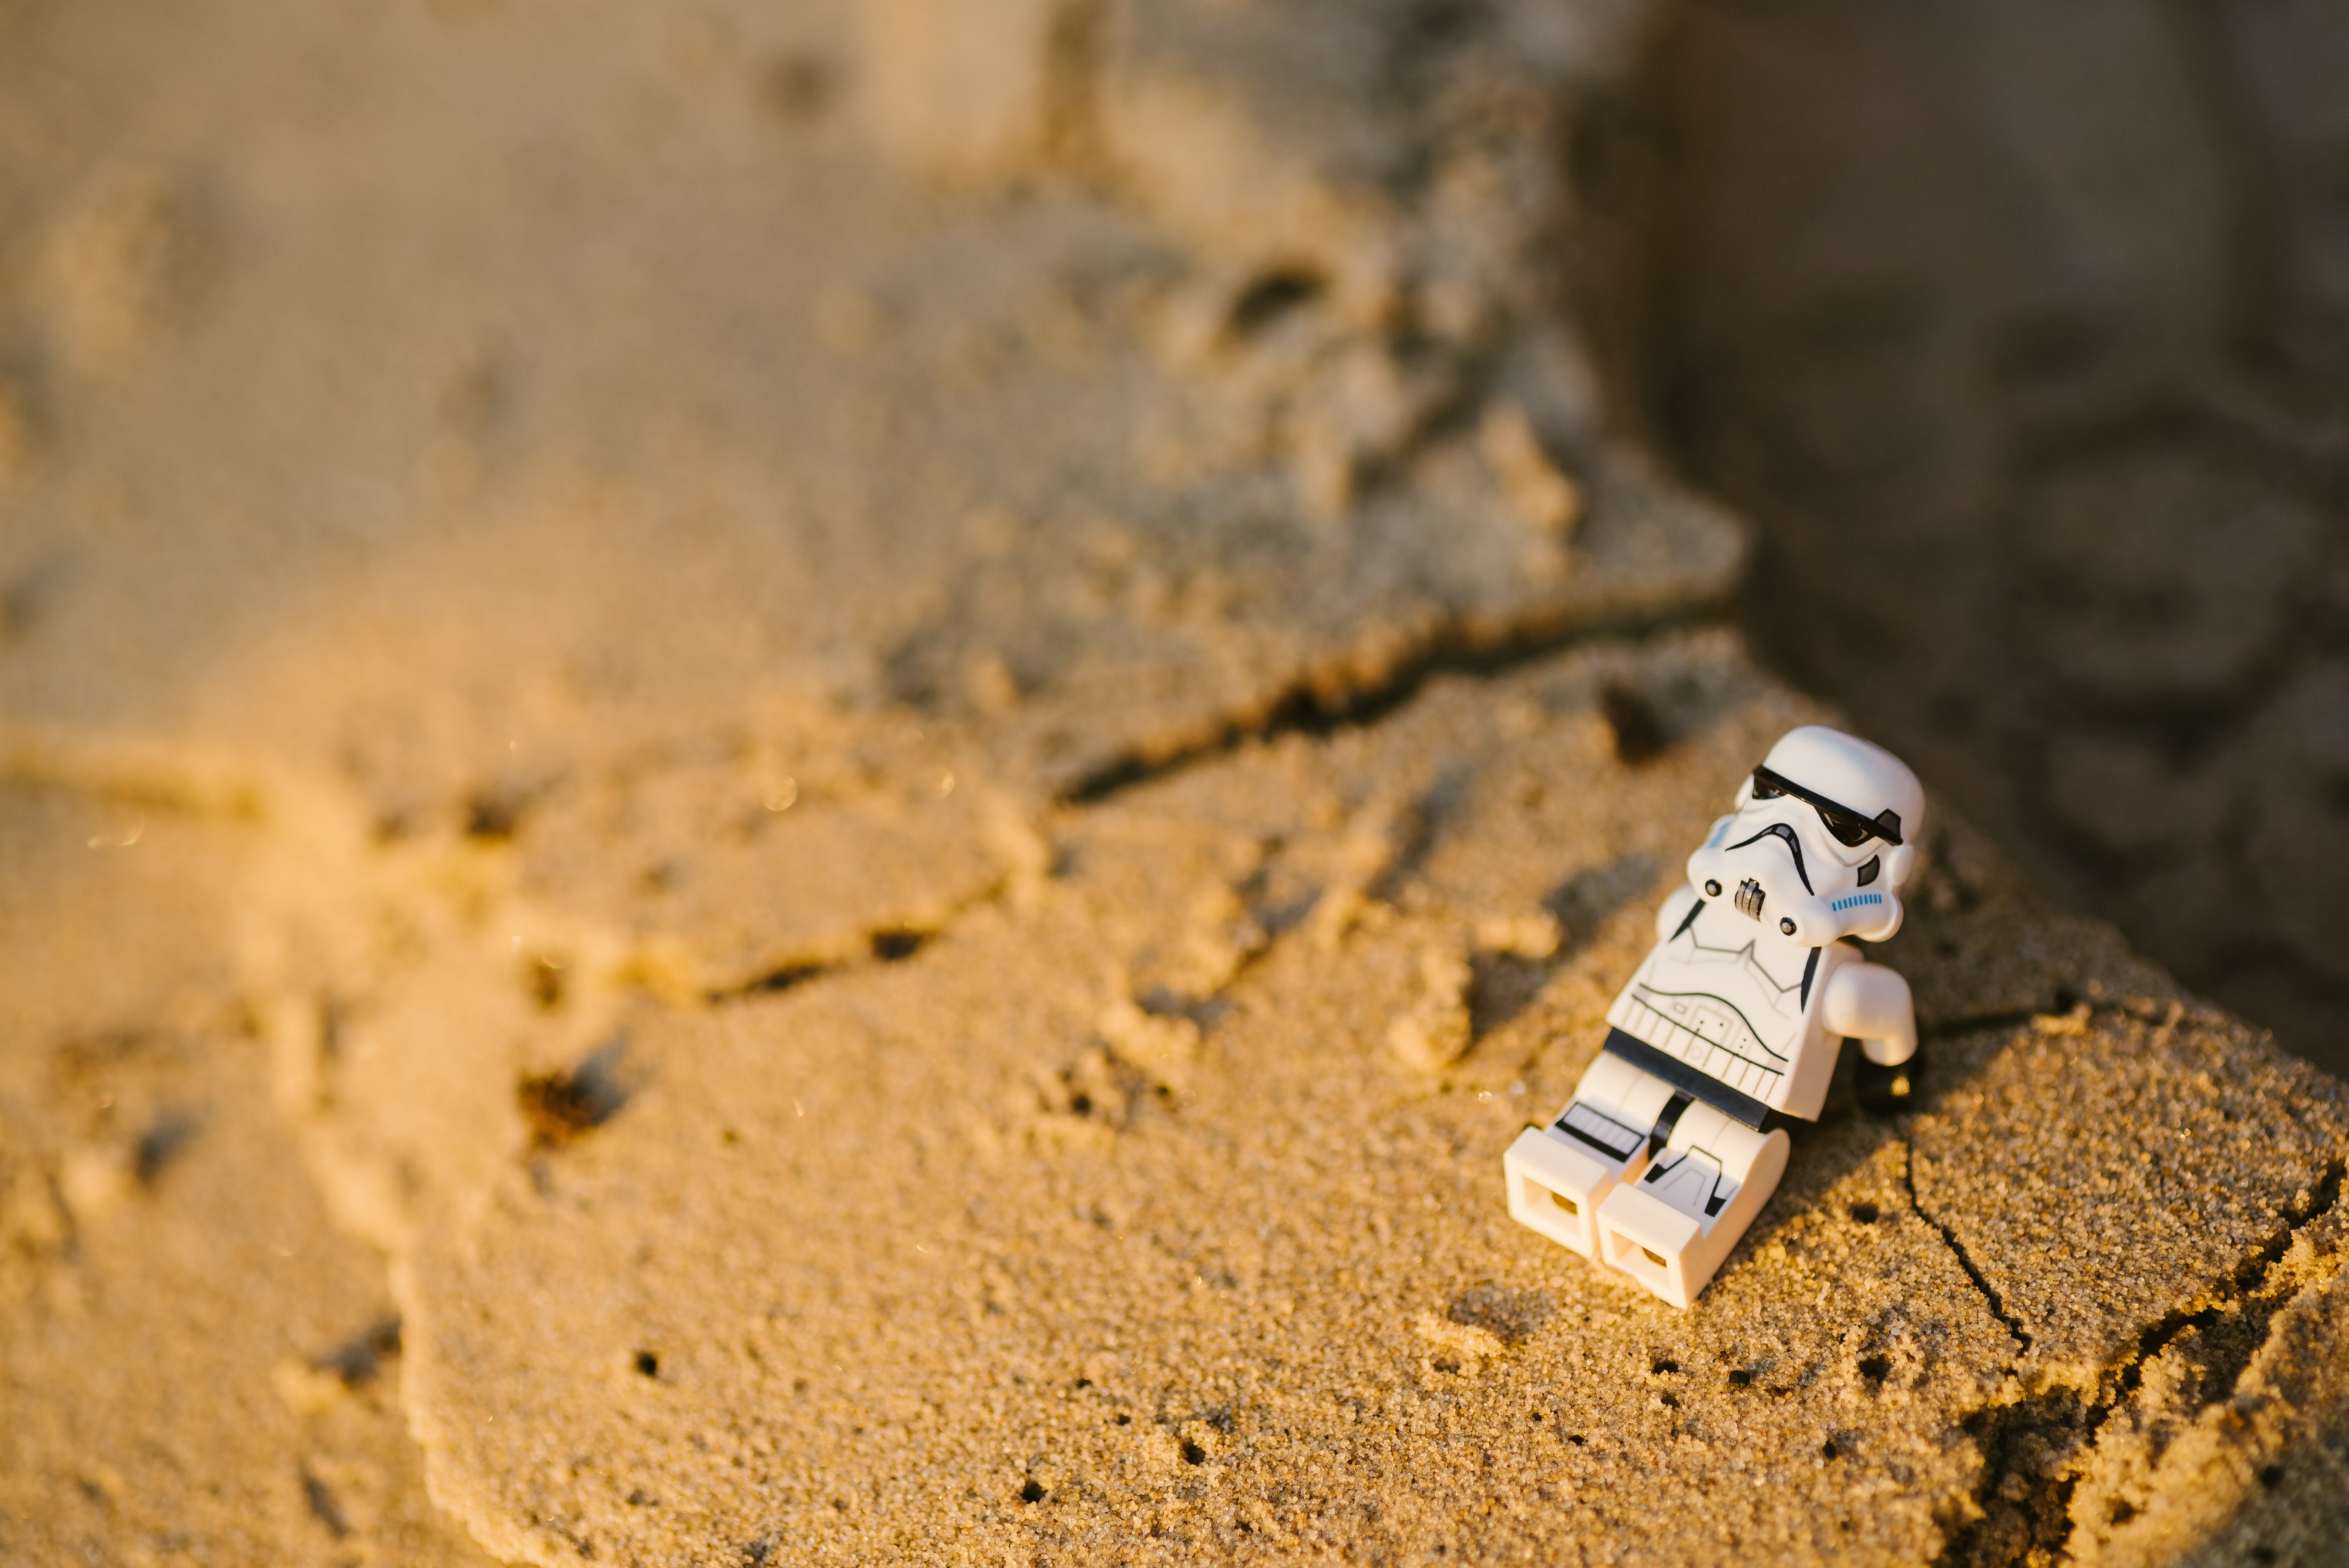 Photo by Daniel Cheung of a Lego Stormtrooper relaxing on the sand, sitting down, leaning back, looking towards the sky.